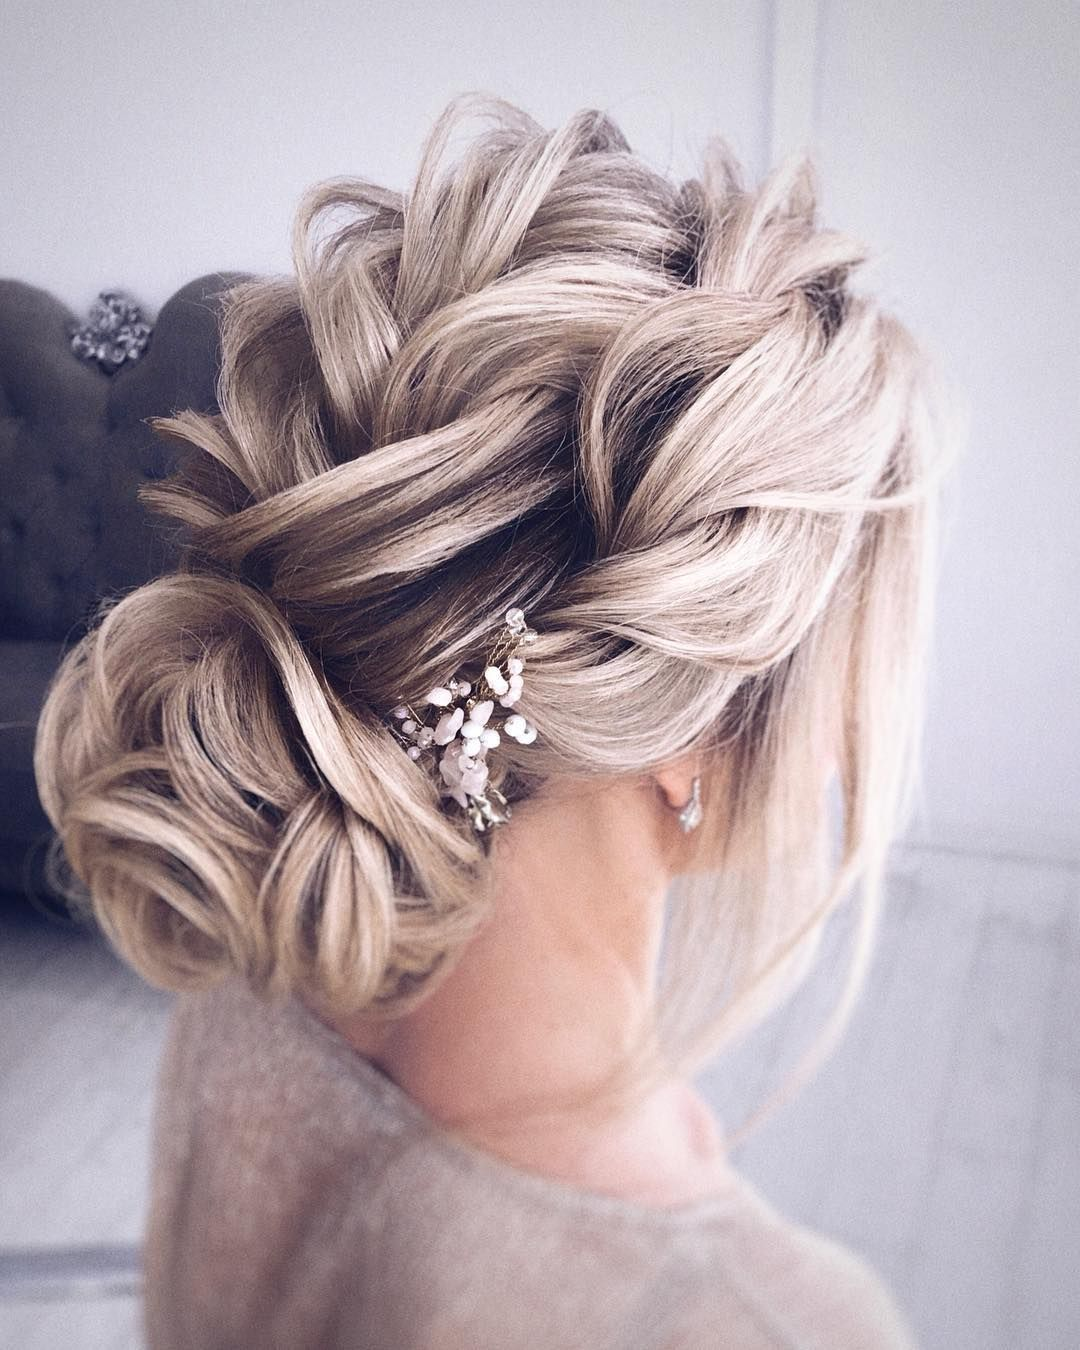 100 gorgeous wedding hair from ceremony to reception | it's